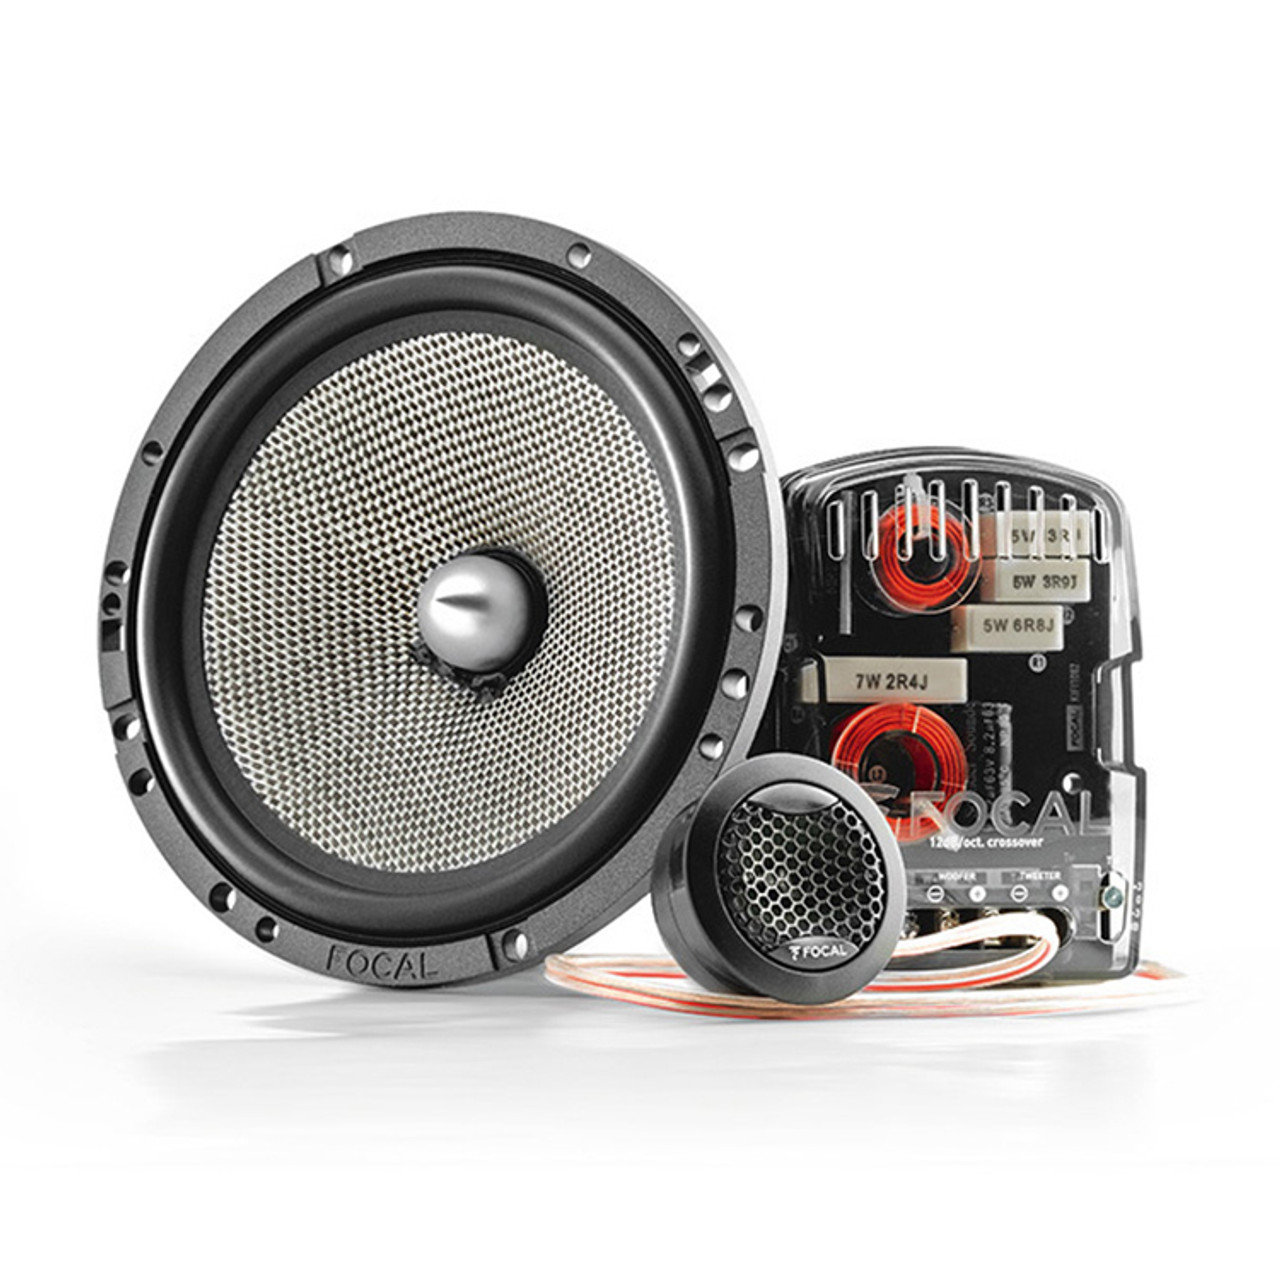 Focal AS165 Access Series 6 75? 2-way Component Speaker System